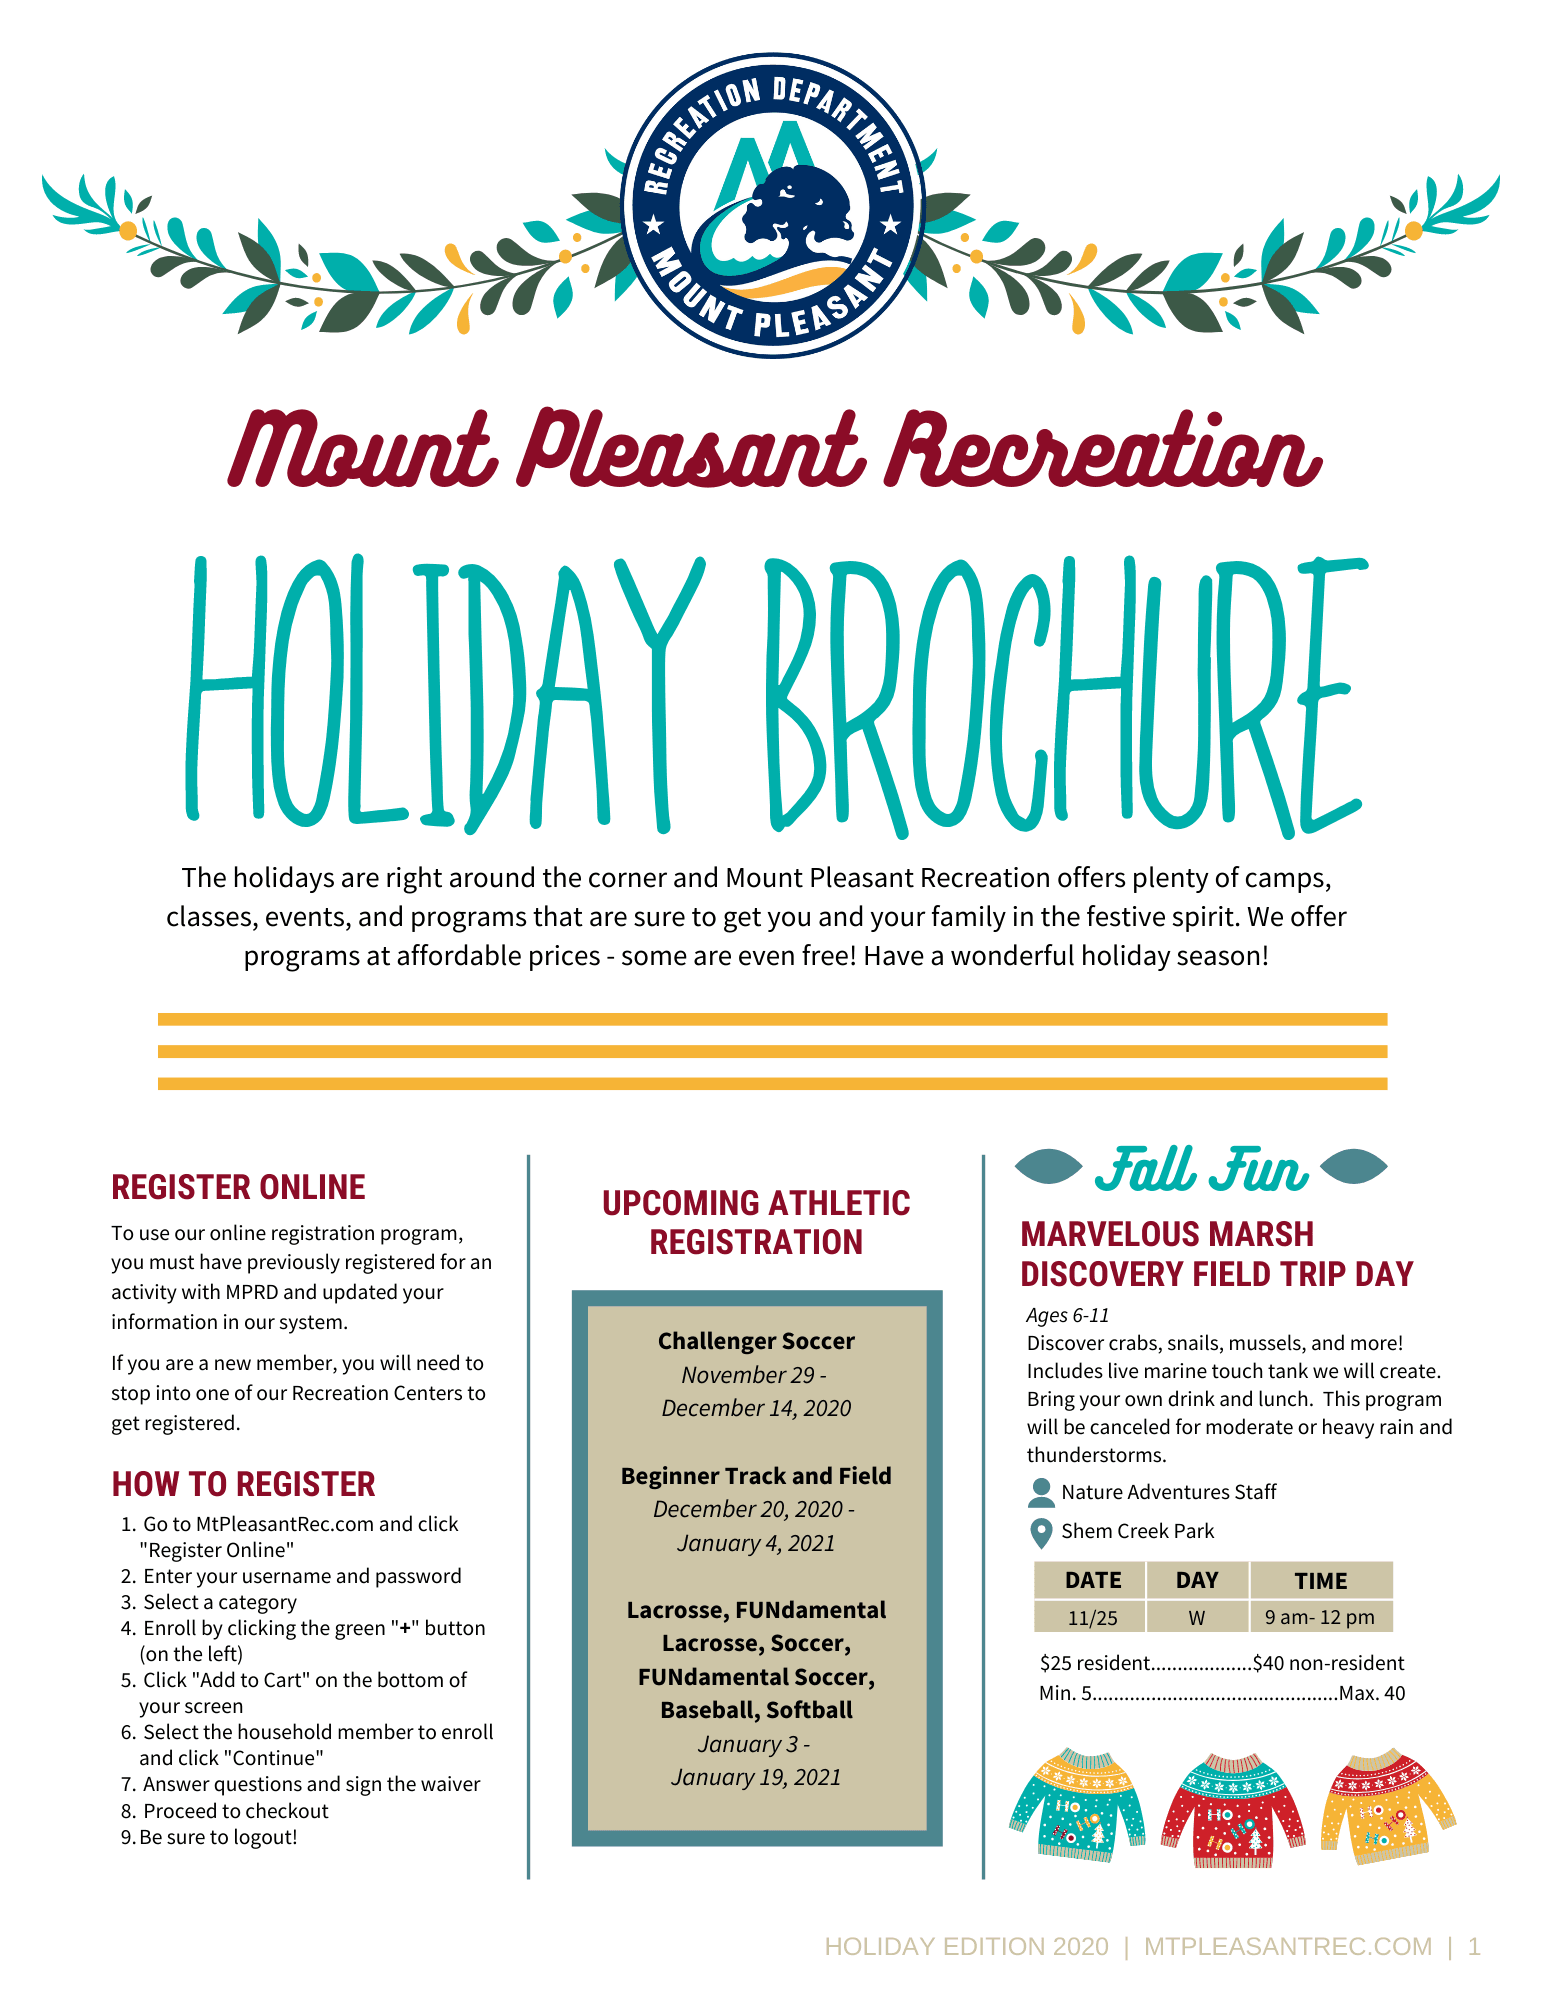 HOLIDAY BROCHURE 2020 FINAL